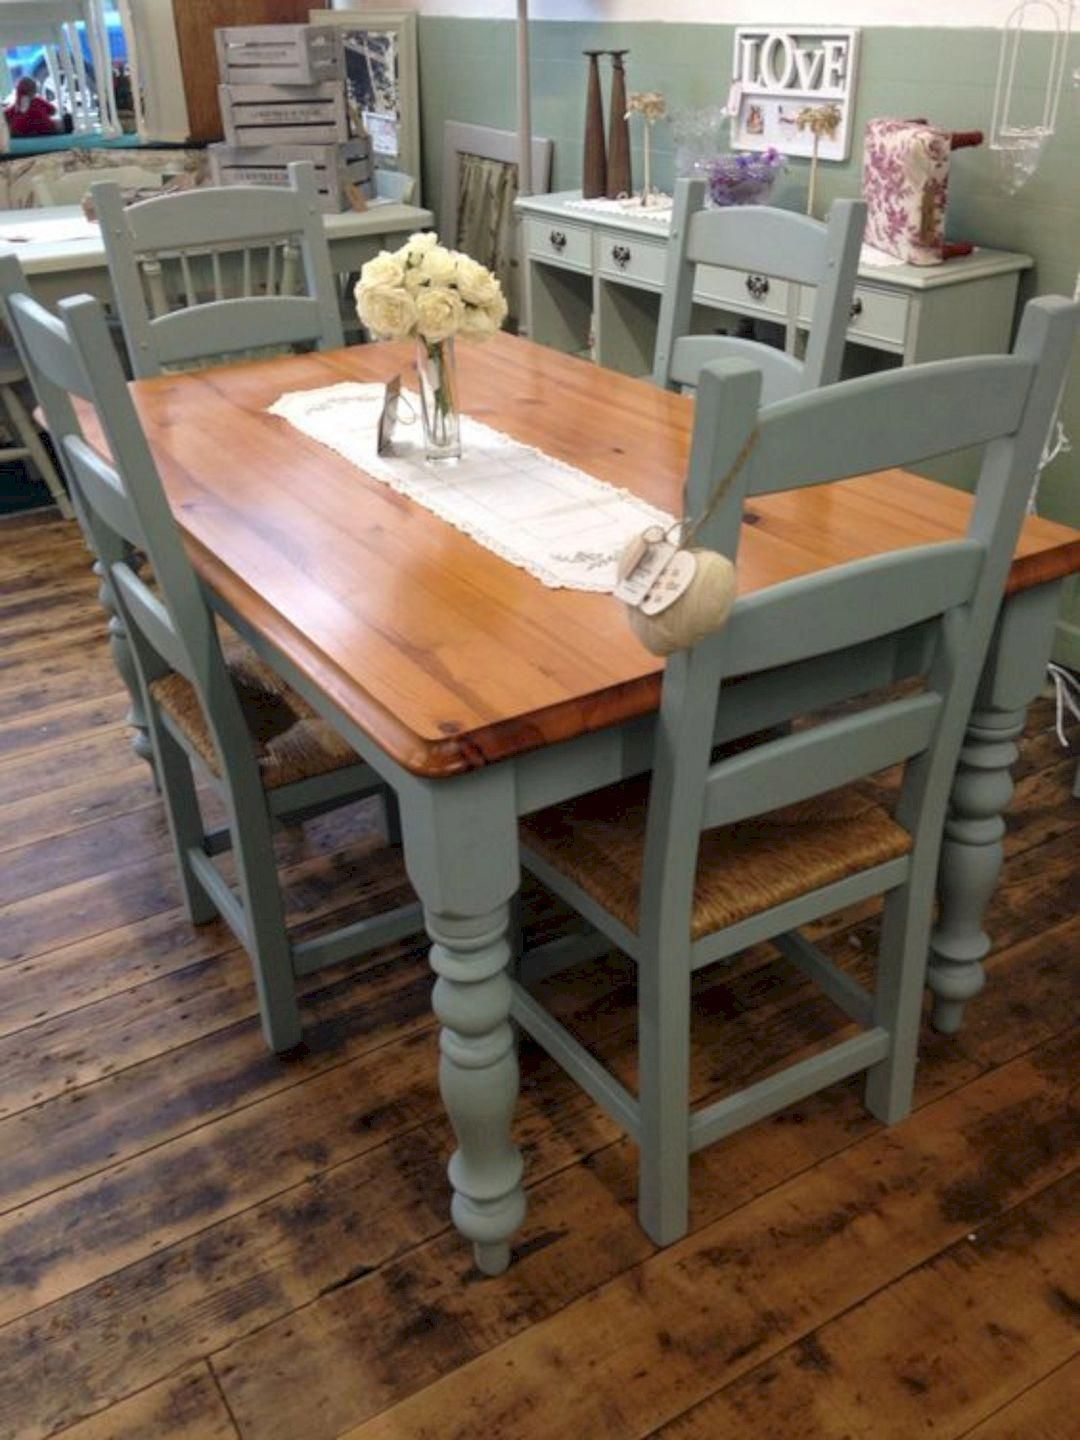 Remarkable Upcycled Dining Table Ideas Repurposed Dresser Ideas Unemploymentrelief Wooden Chair Designs For Living Room Unemploymentrelieforg